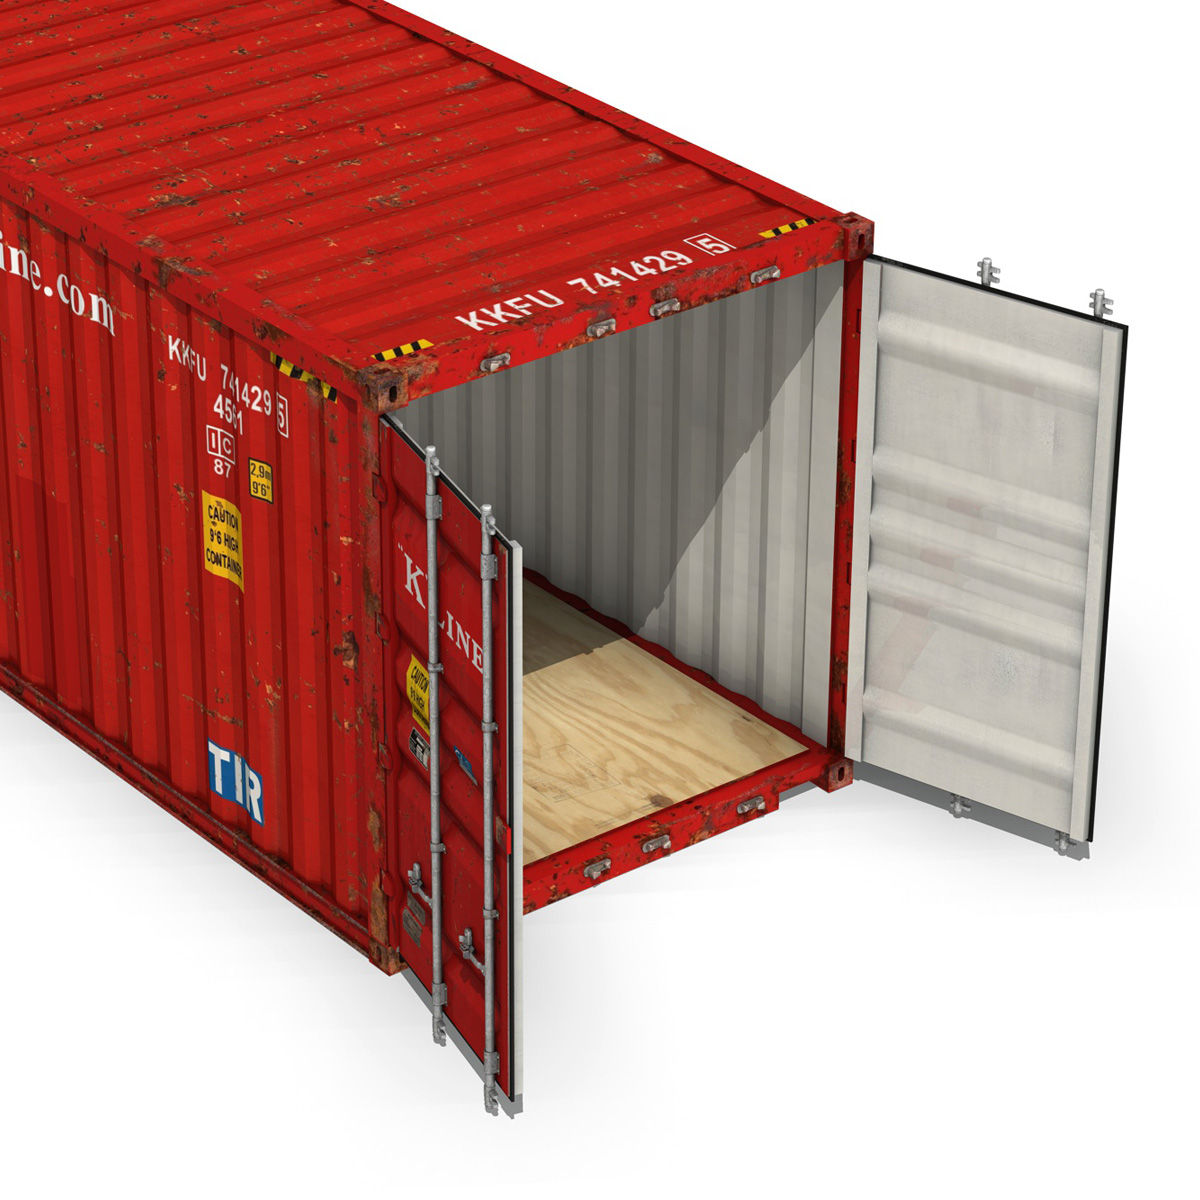 40ft shipping container k line 3d model buy 40ft for Shipping containers for sale in minnesota